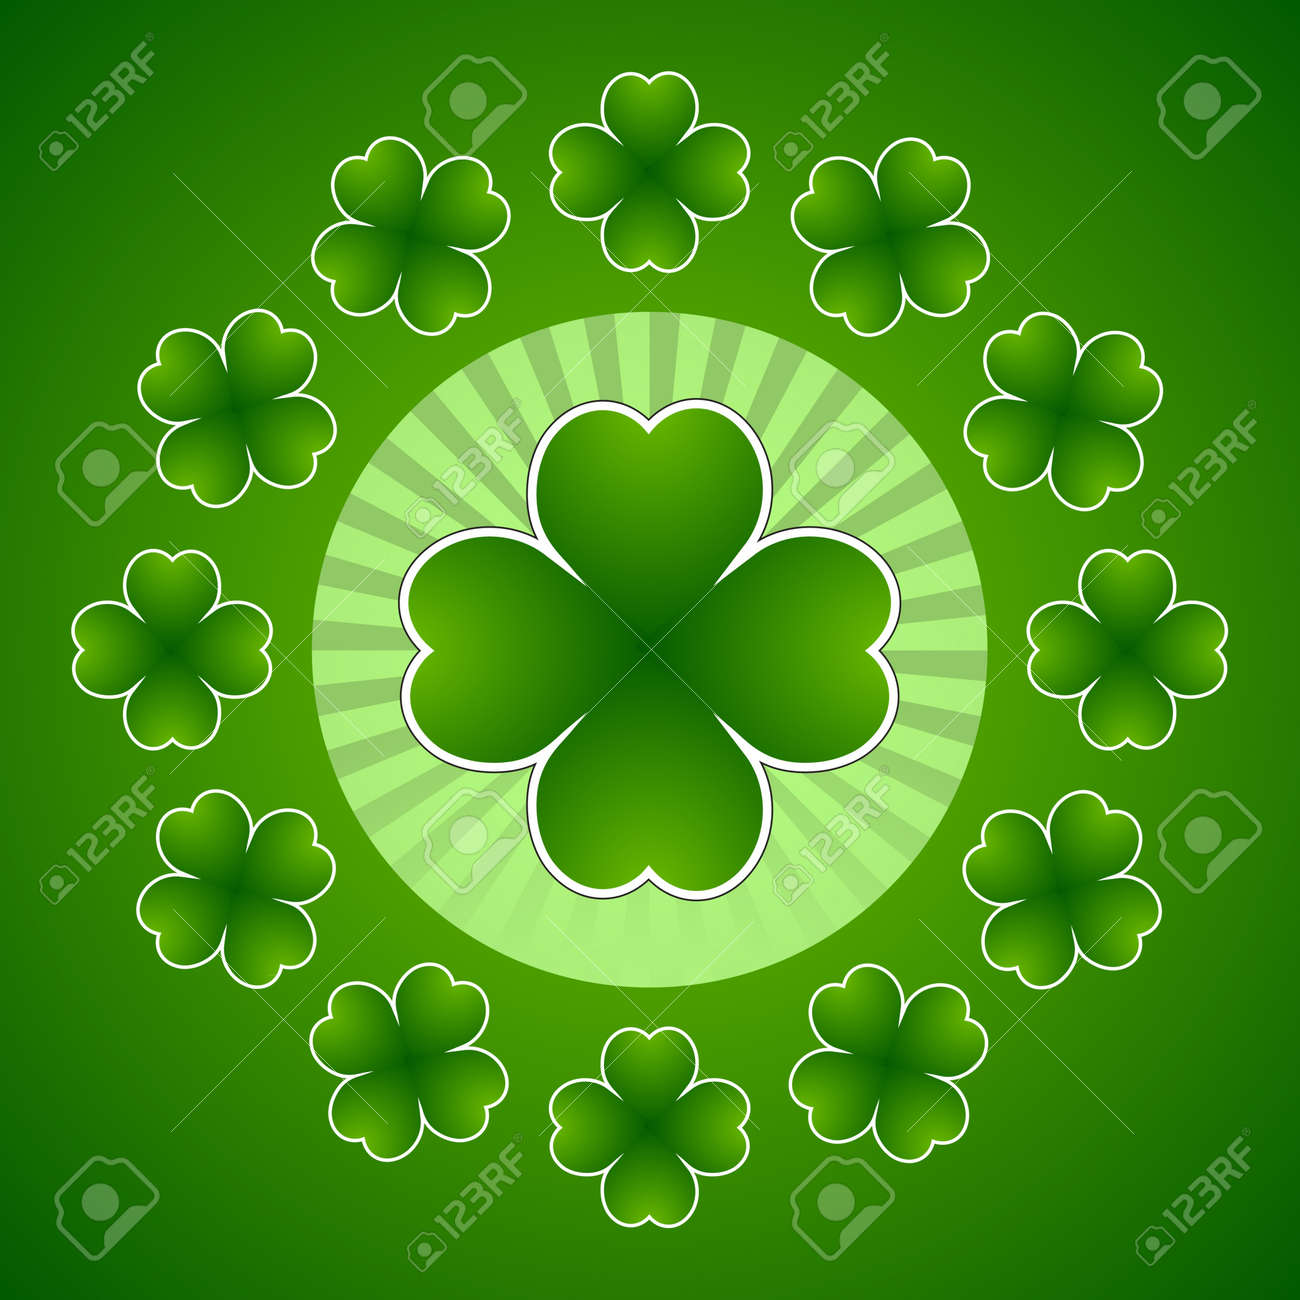 Clover leaf element background for happy St. Patricks Day Stock Vector - 17597307